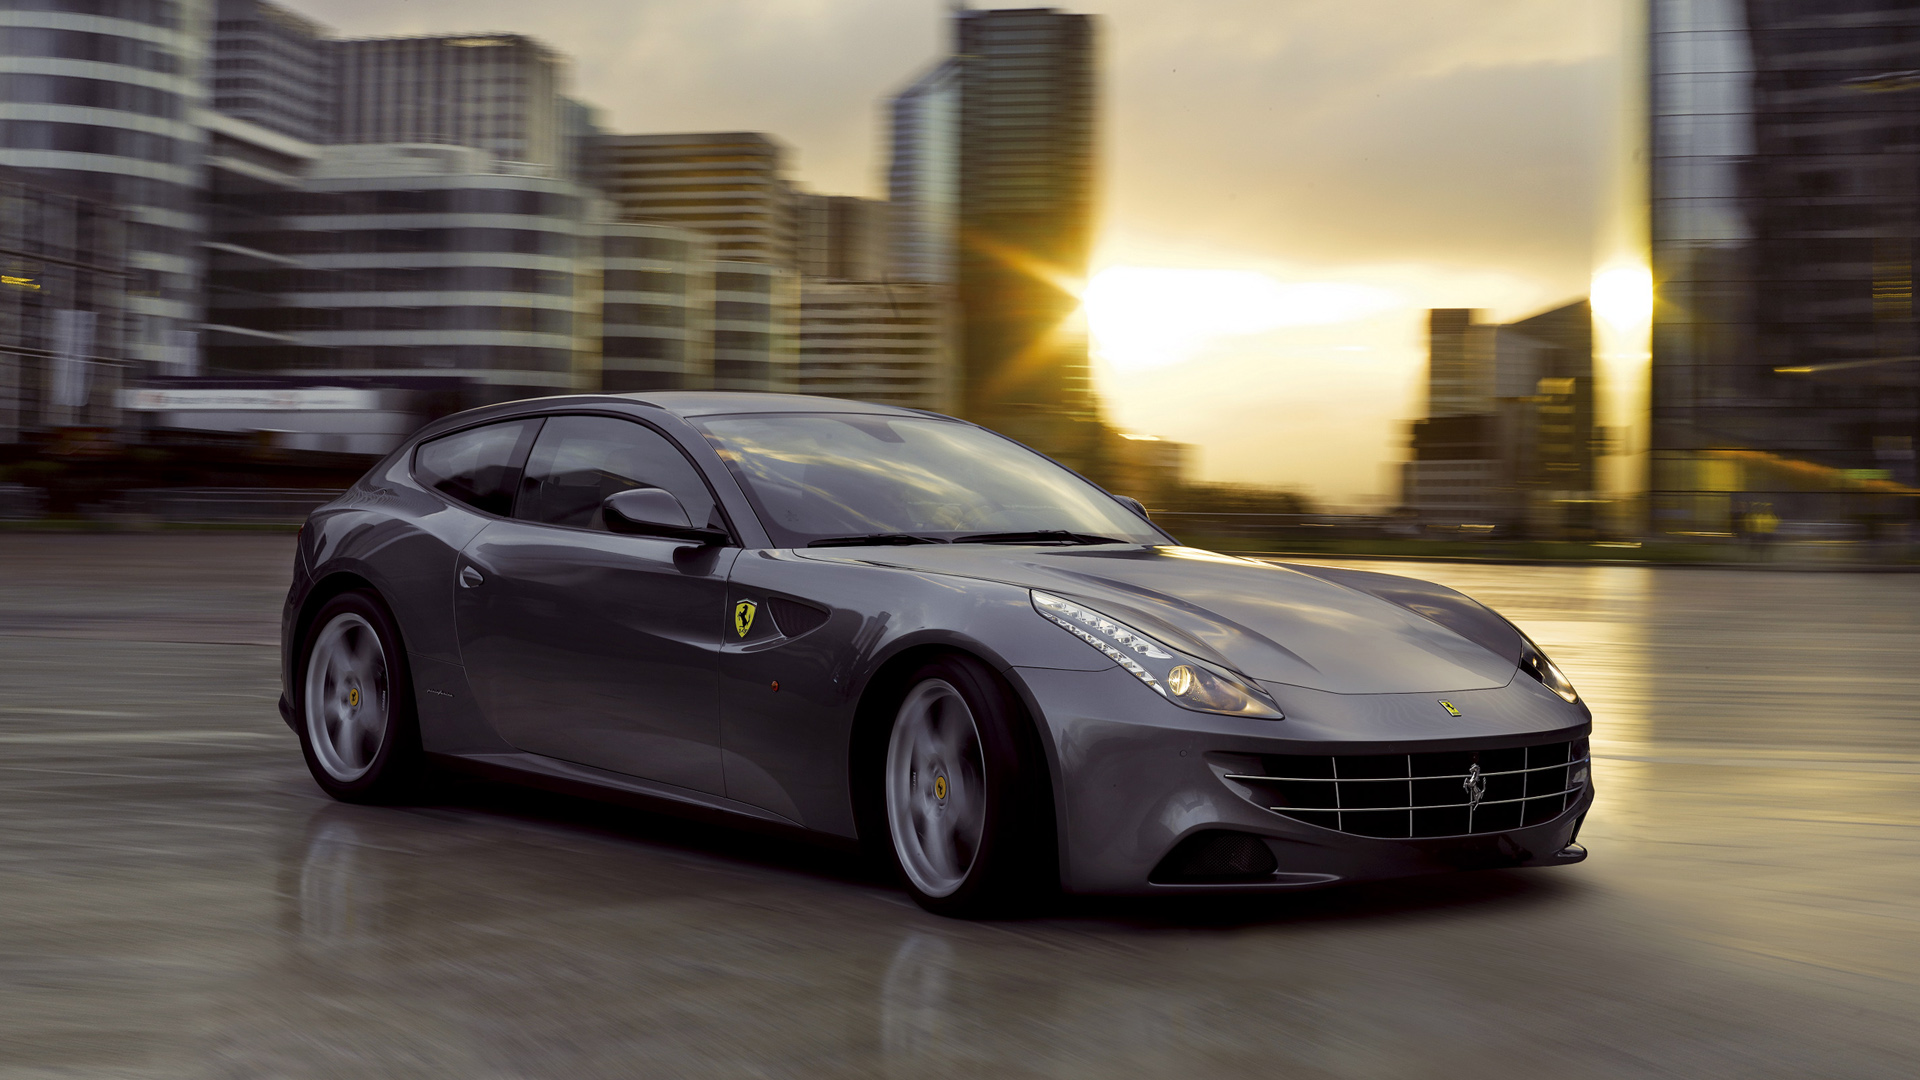 1920x1080 - Ferrari FF Wallpapers 9